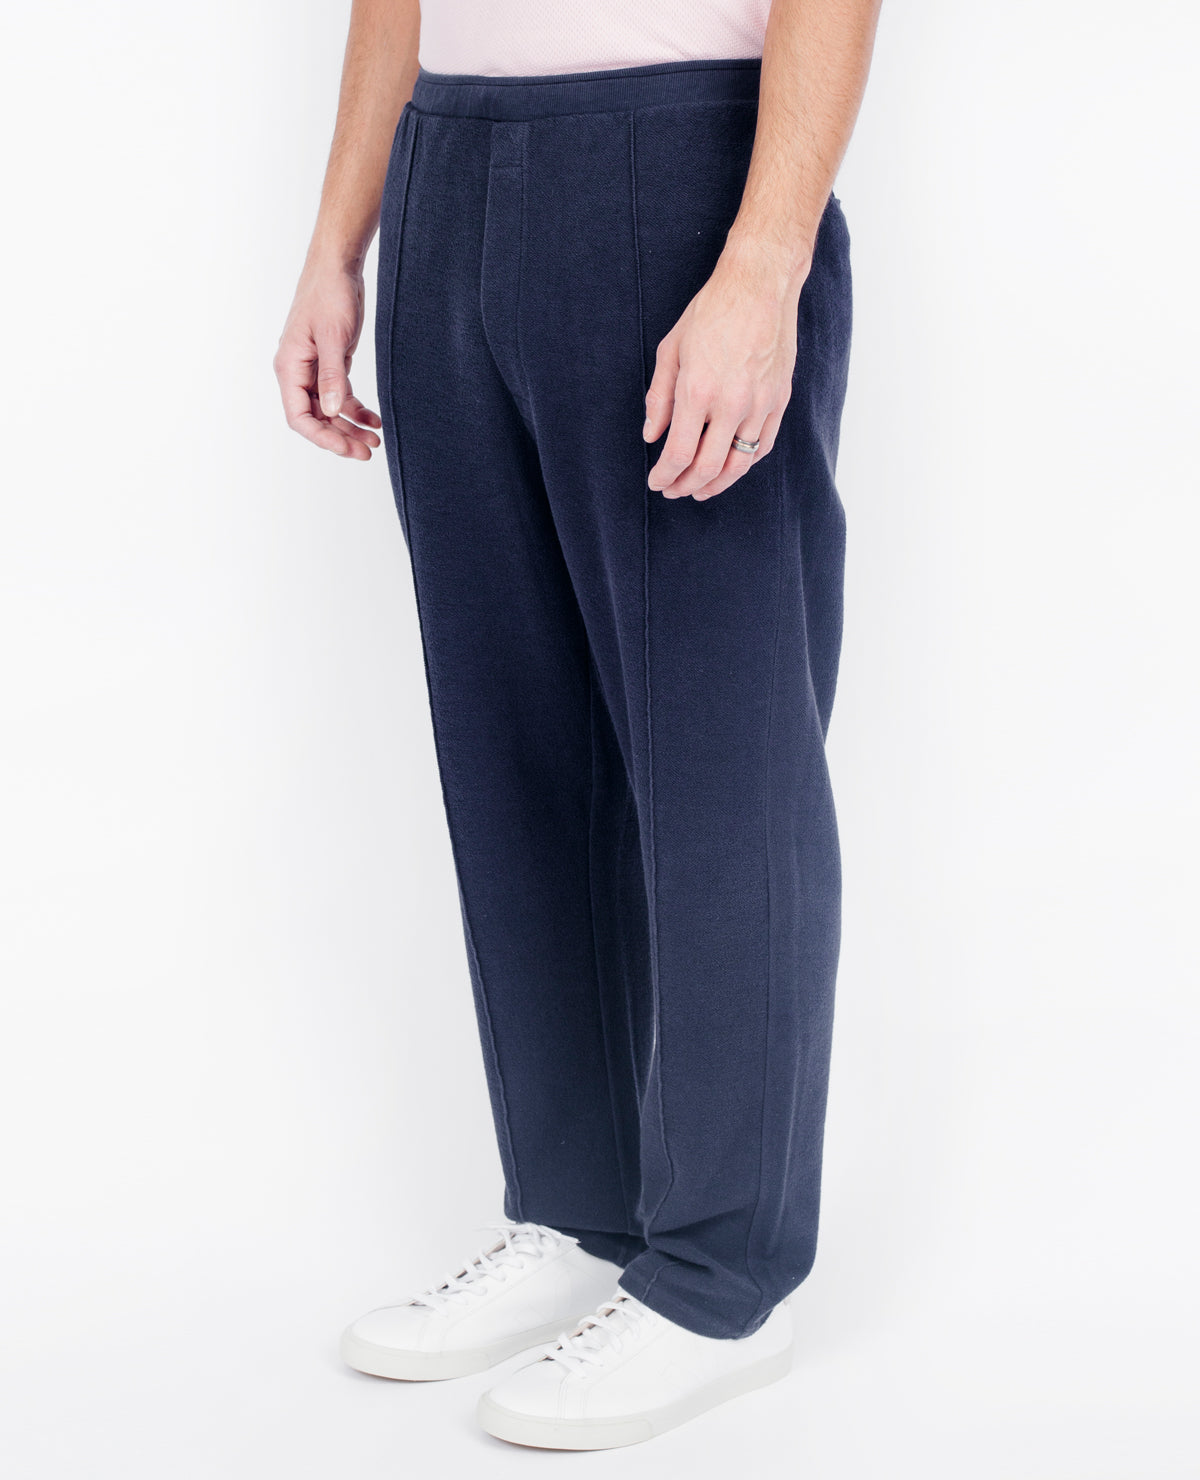 LES BASICS Long Pant / Navy